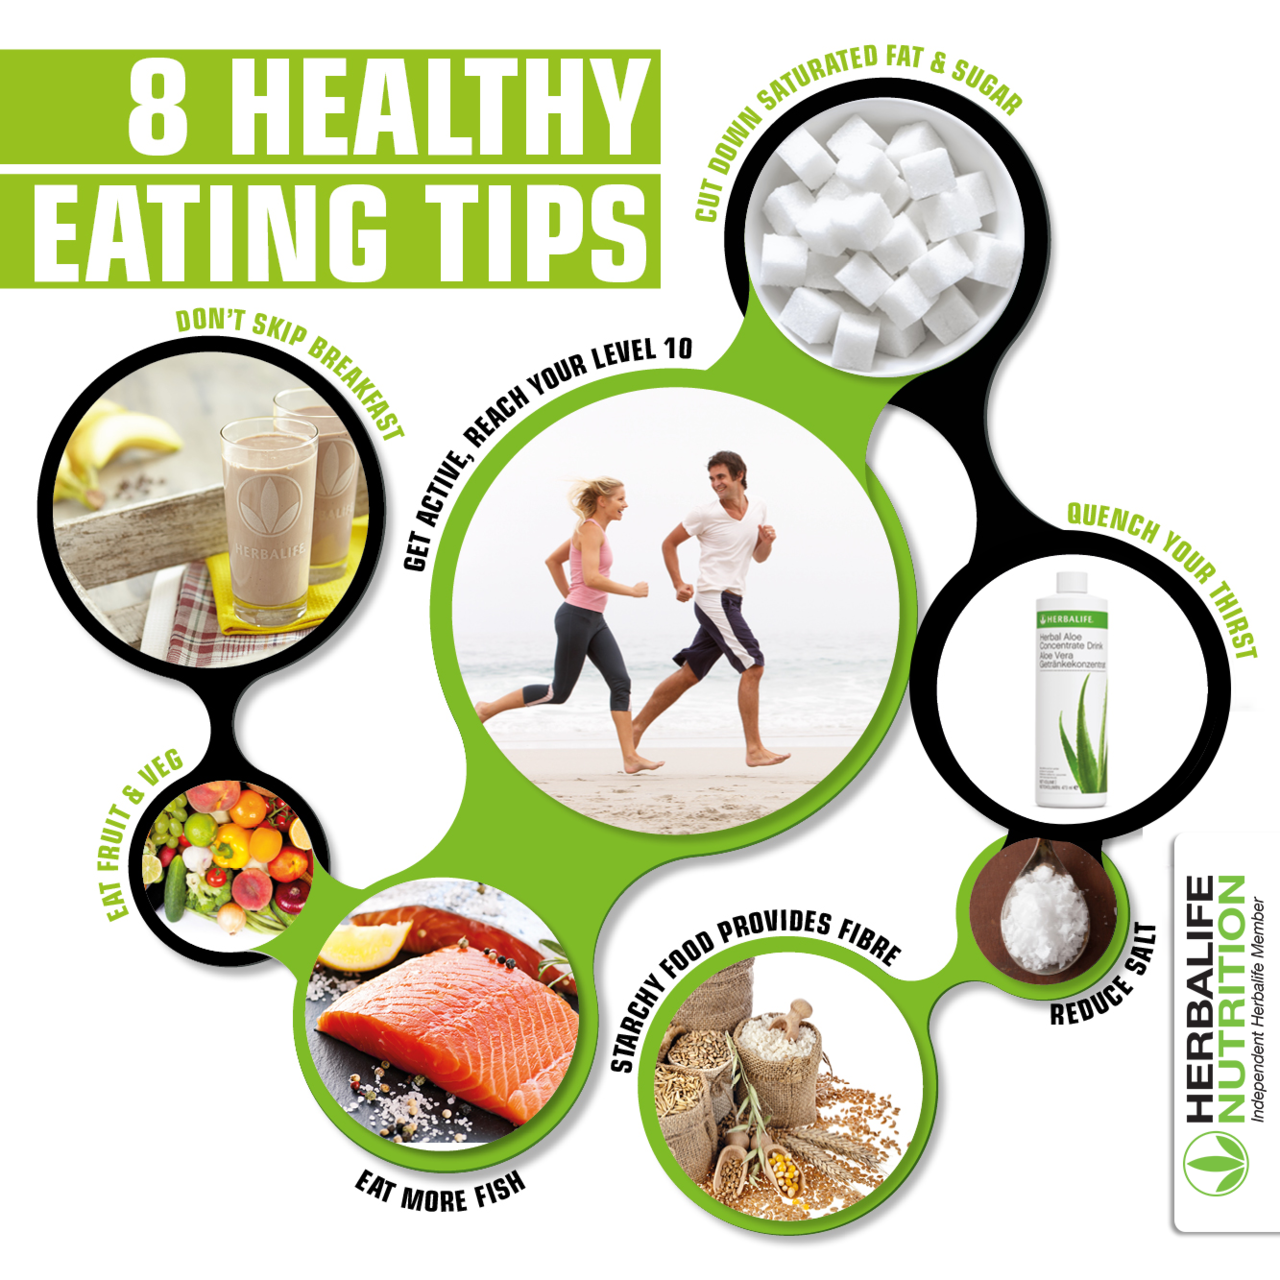 5 Handy Lifestyle Tips To Keep In Mind